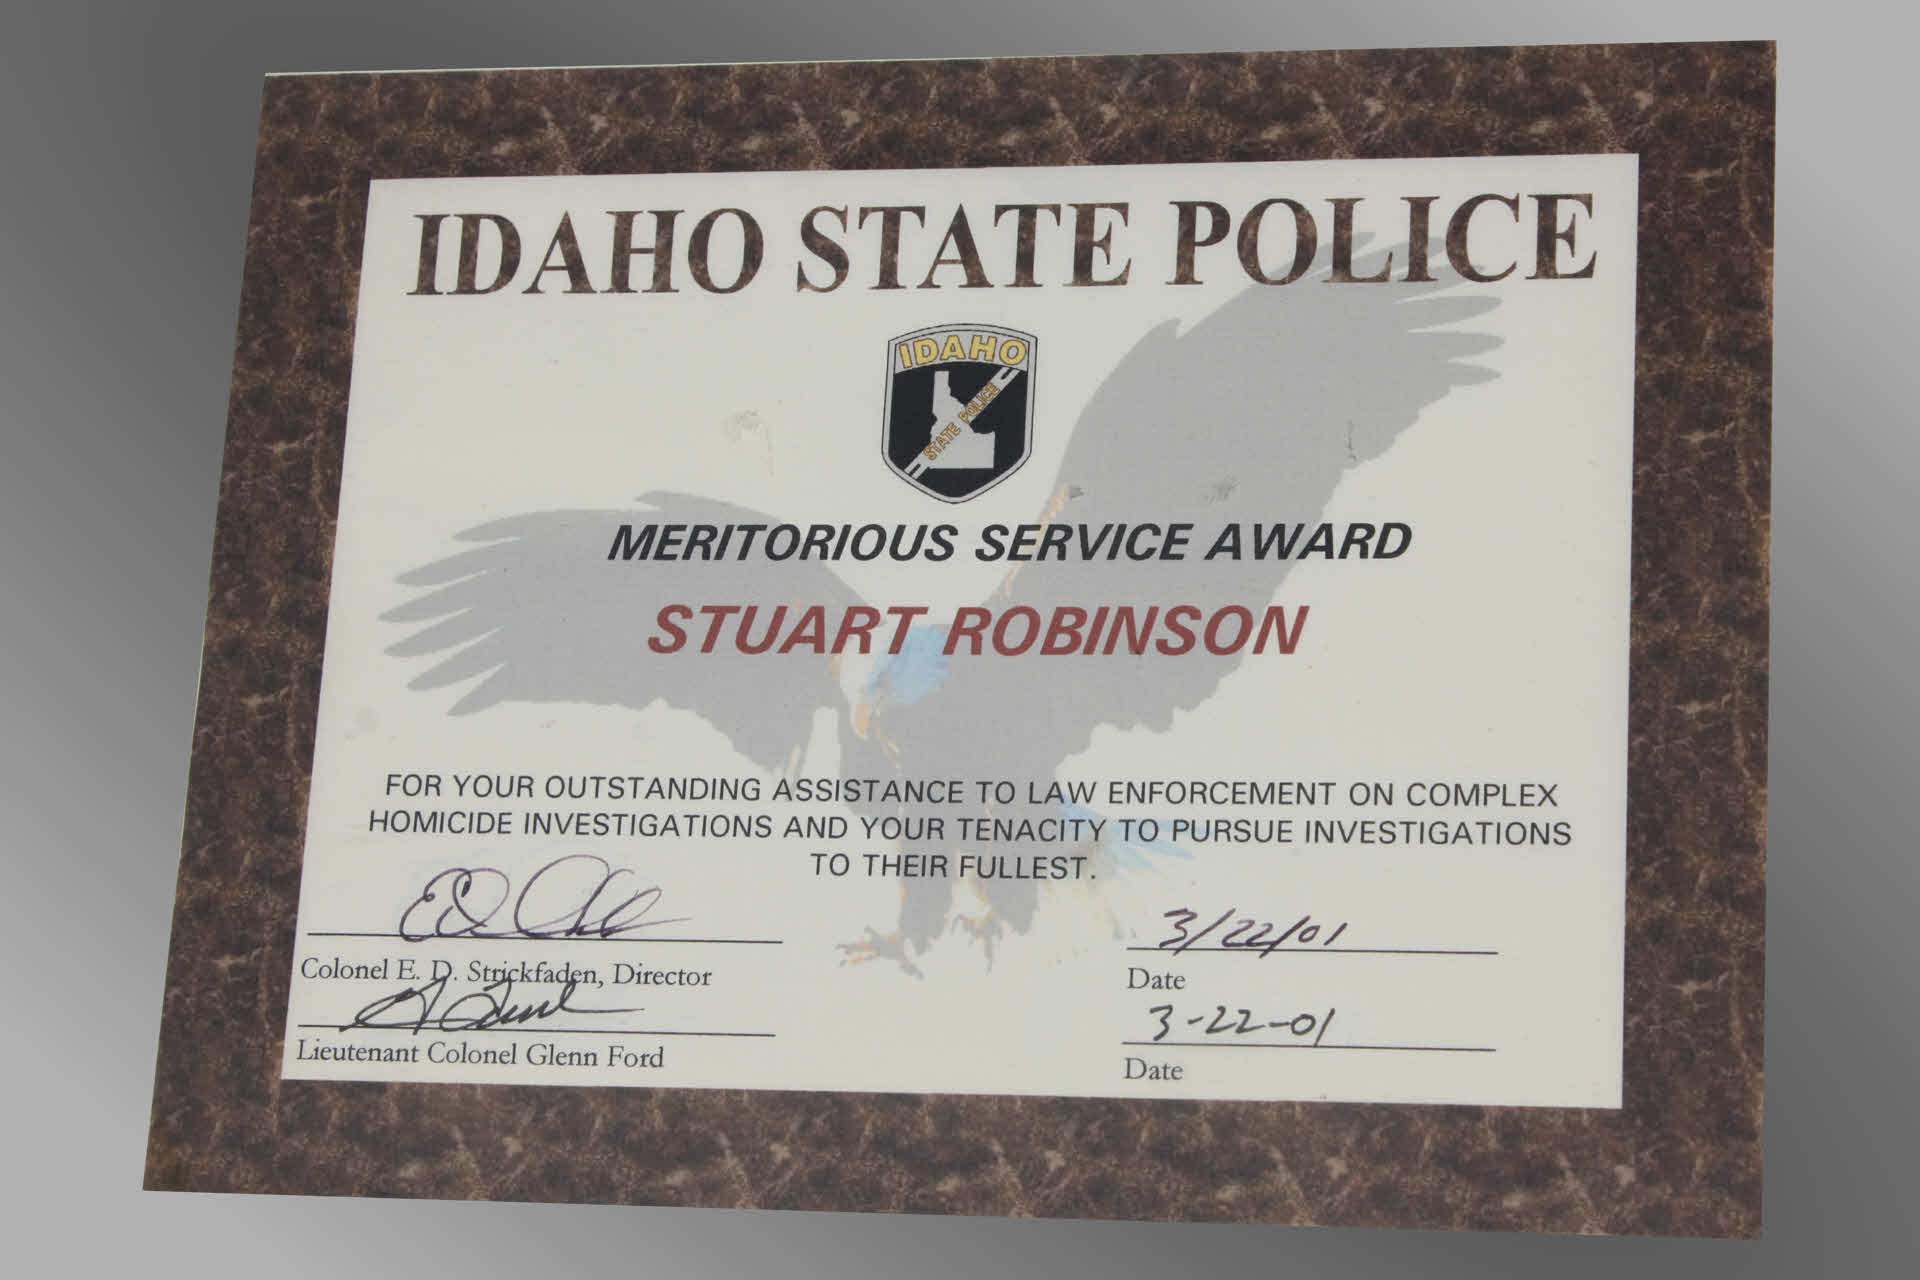 Idaho State Police Investigations Award